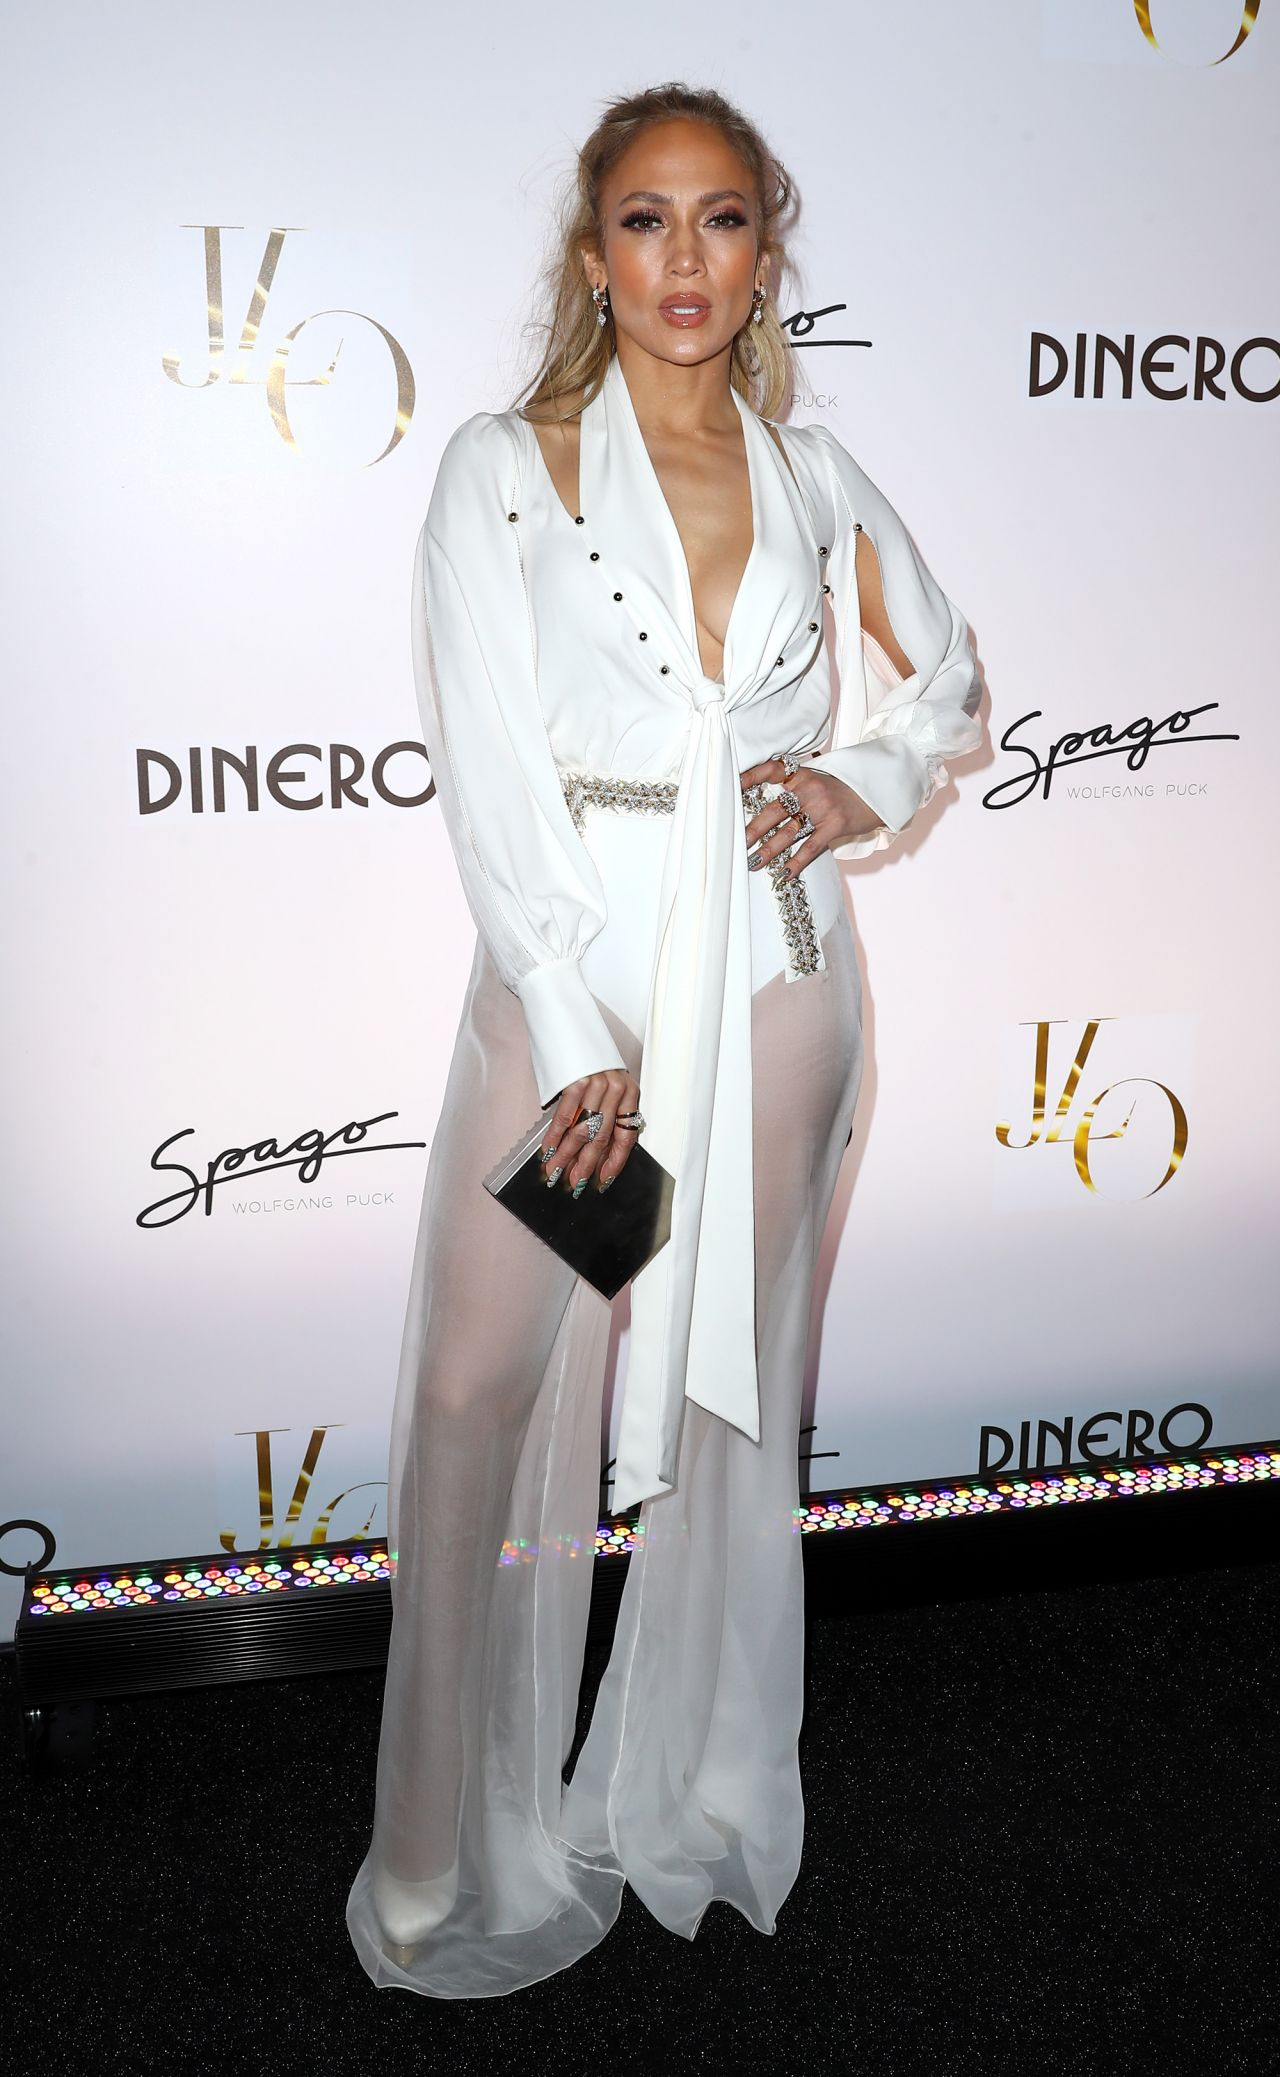 http://celebmafia.com/wp-content/uploads/2018/05/jennifer-lopez-celebrates-release-of-new-single-dinero-in-las-vegas-2.jpg